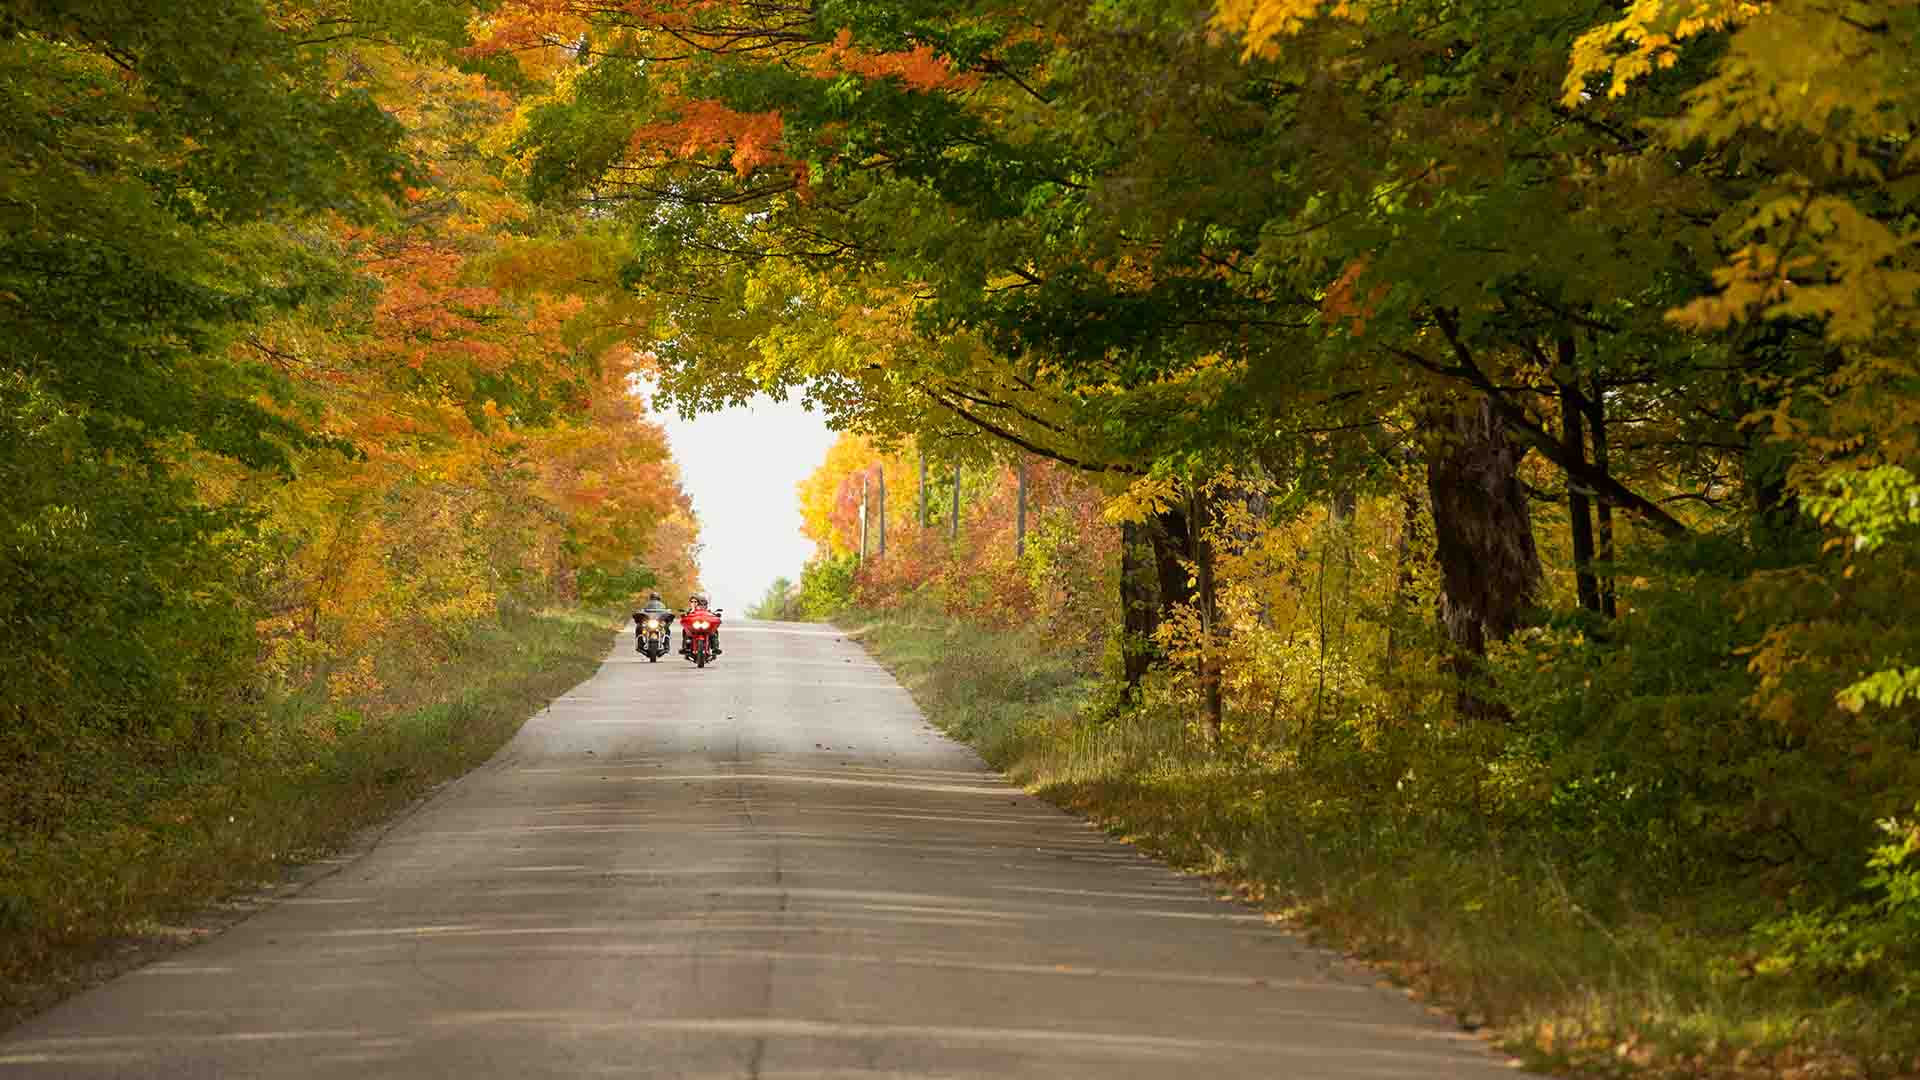 severn biking - Tour These Driving Routes This Fall